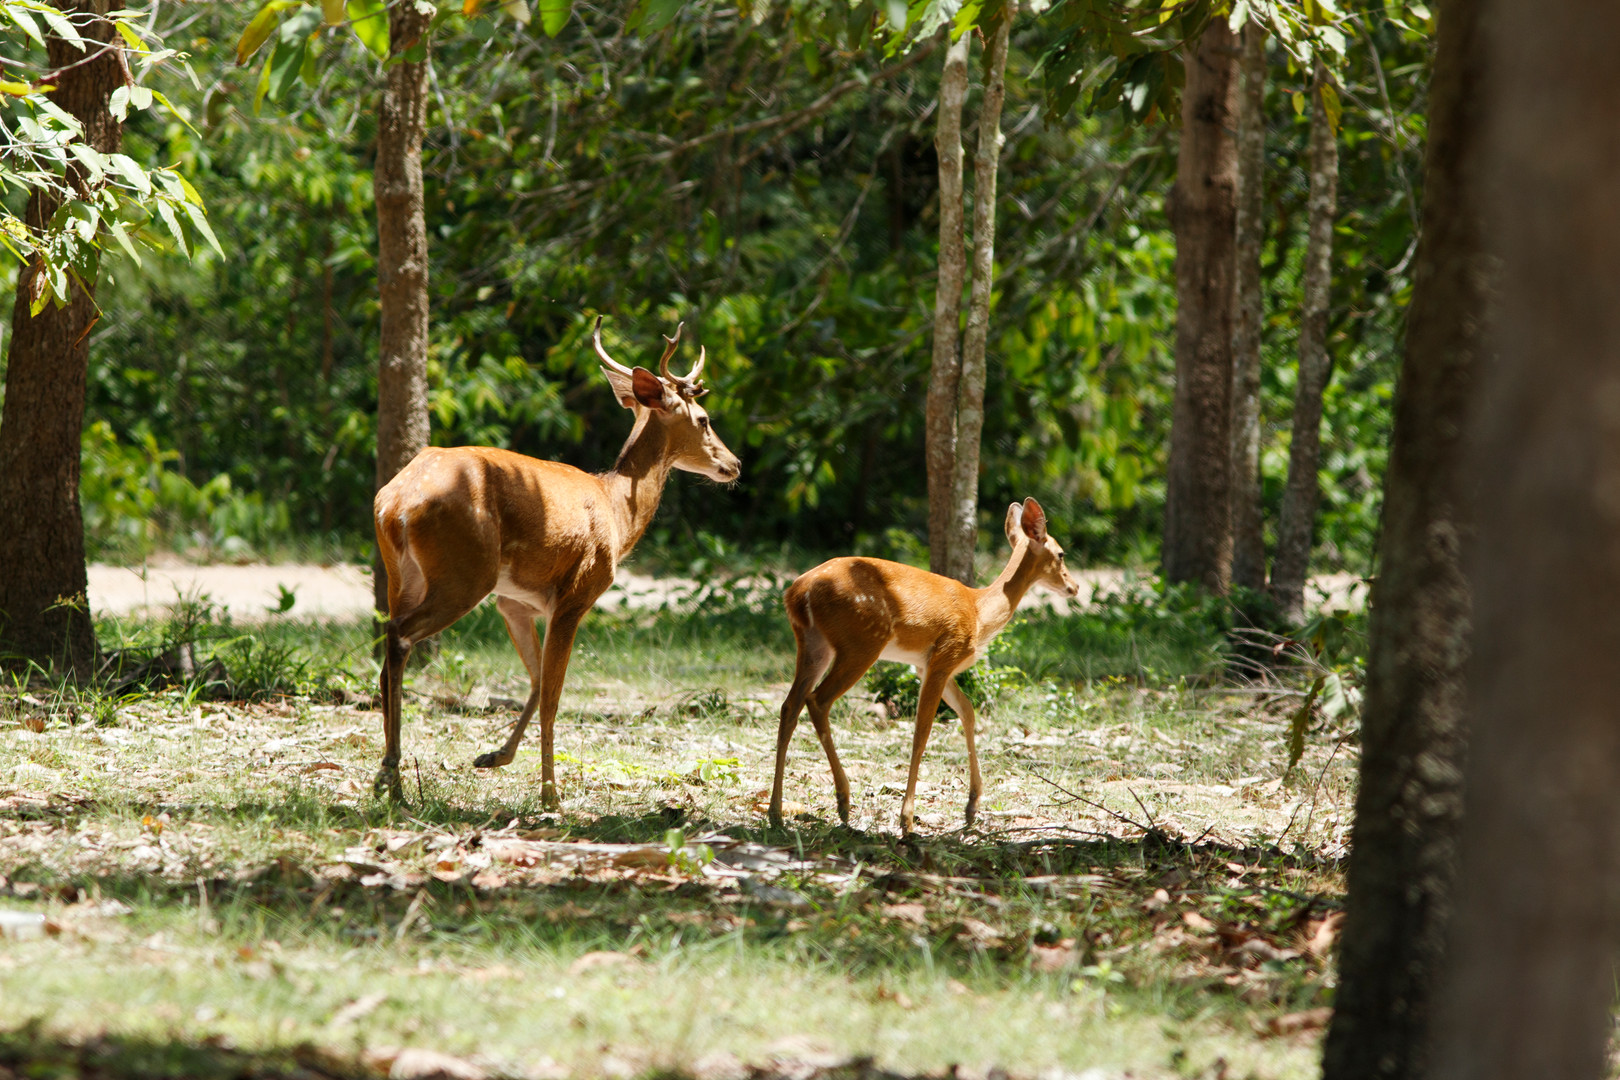 An Eld's deer with fawn rush back to the forest's edge at Phnom Tamao Wildlife Rescue Centre. Numerous animals have been released at the dry forest site.